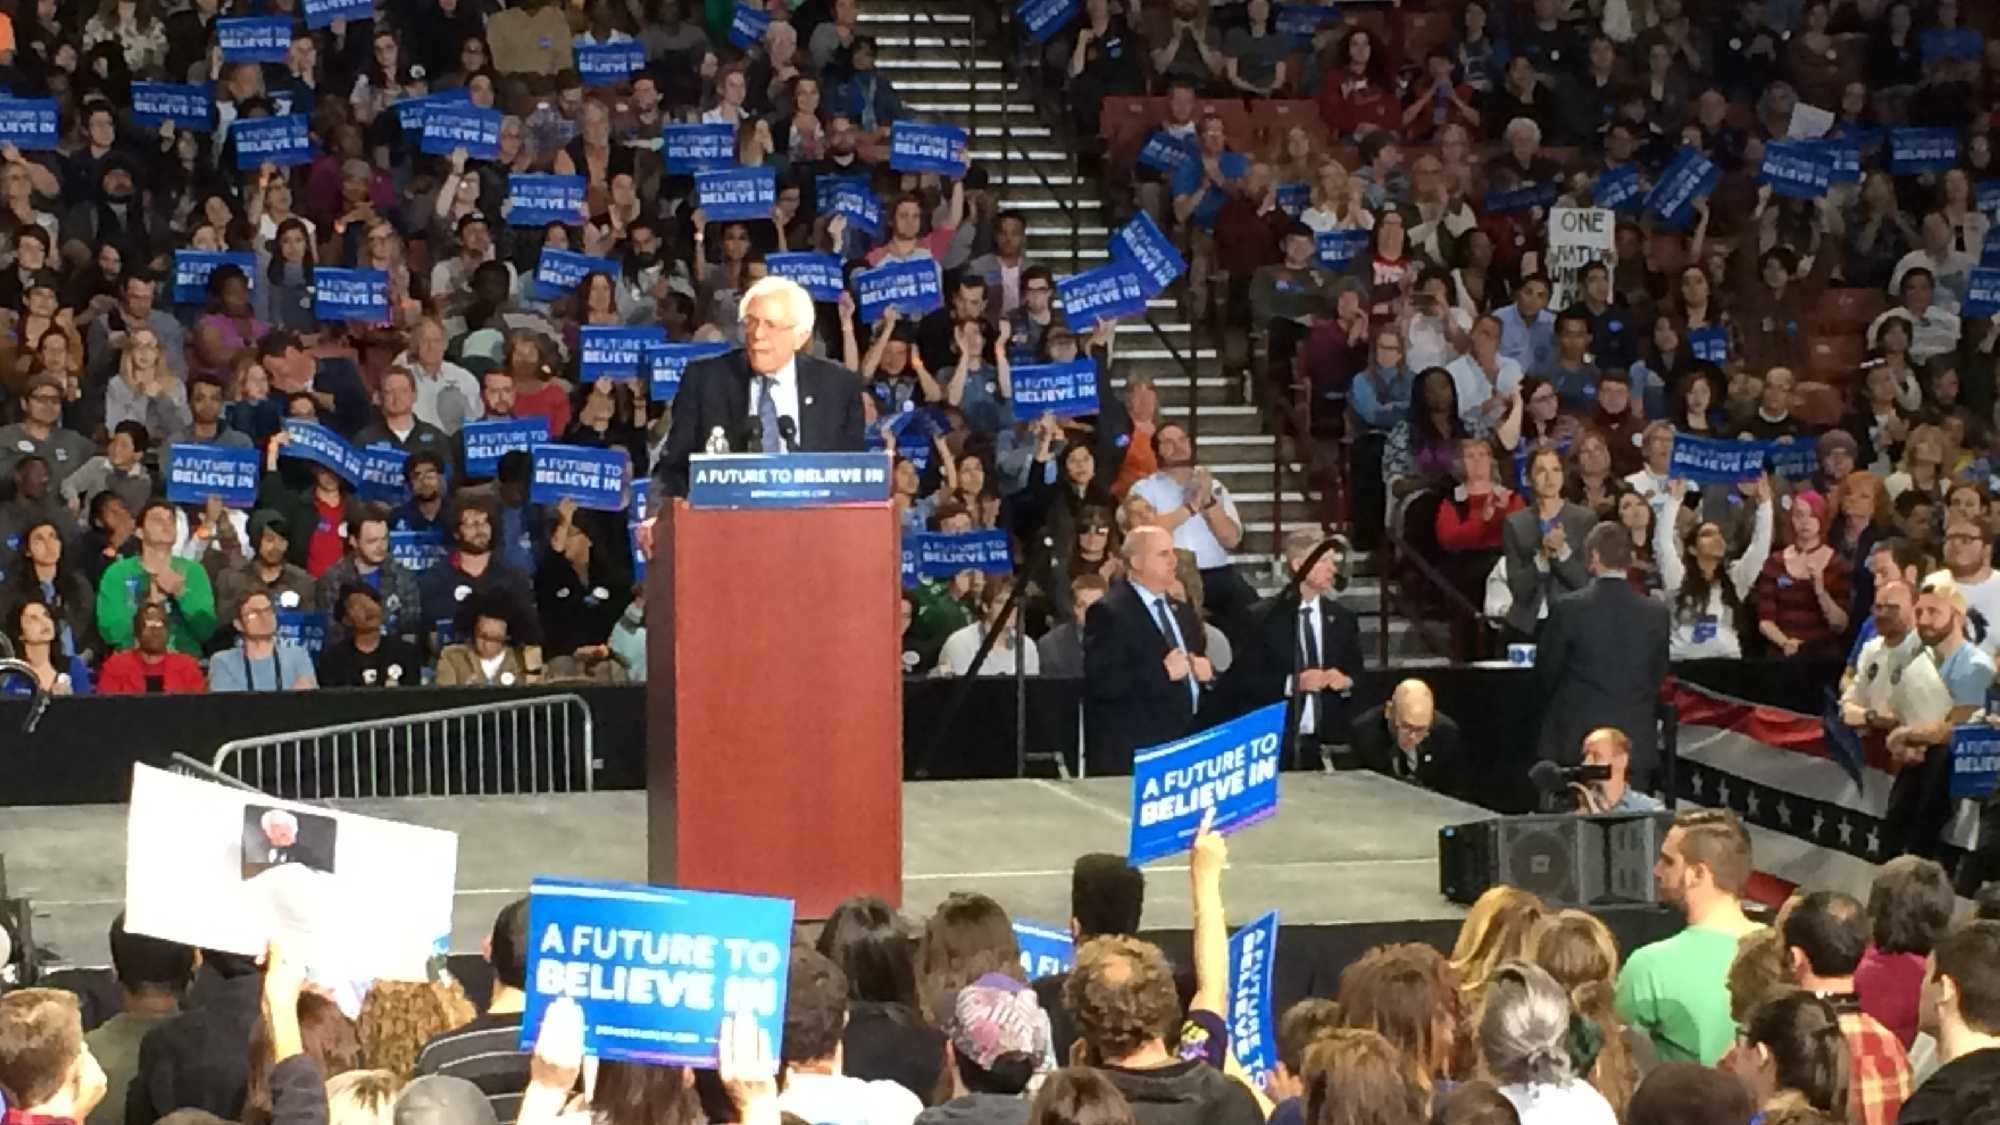 Bernie Sanders address thousands of supporters in Greenville